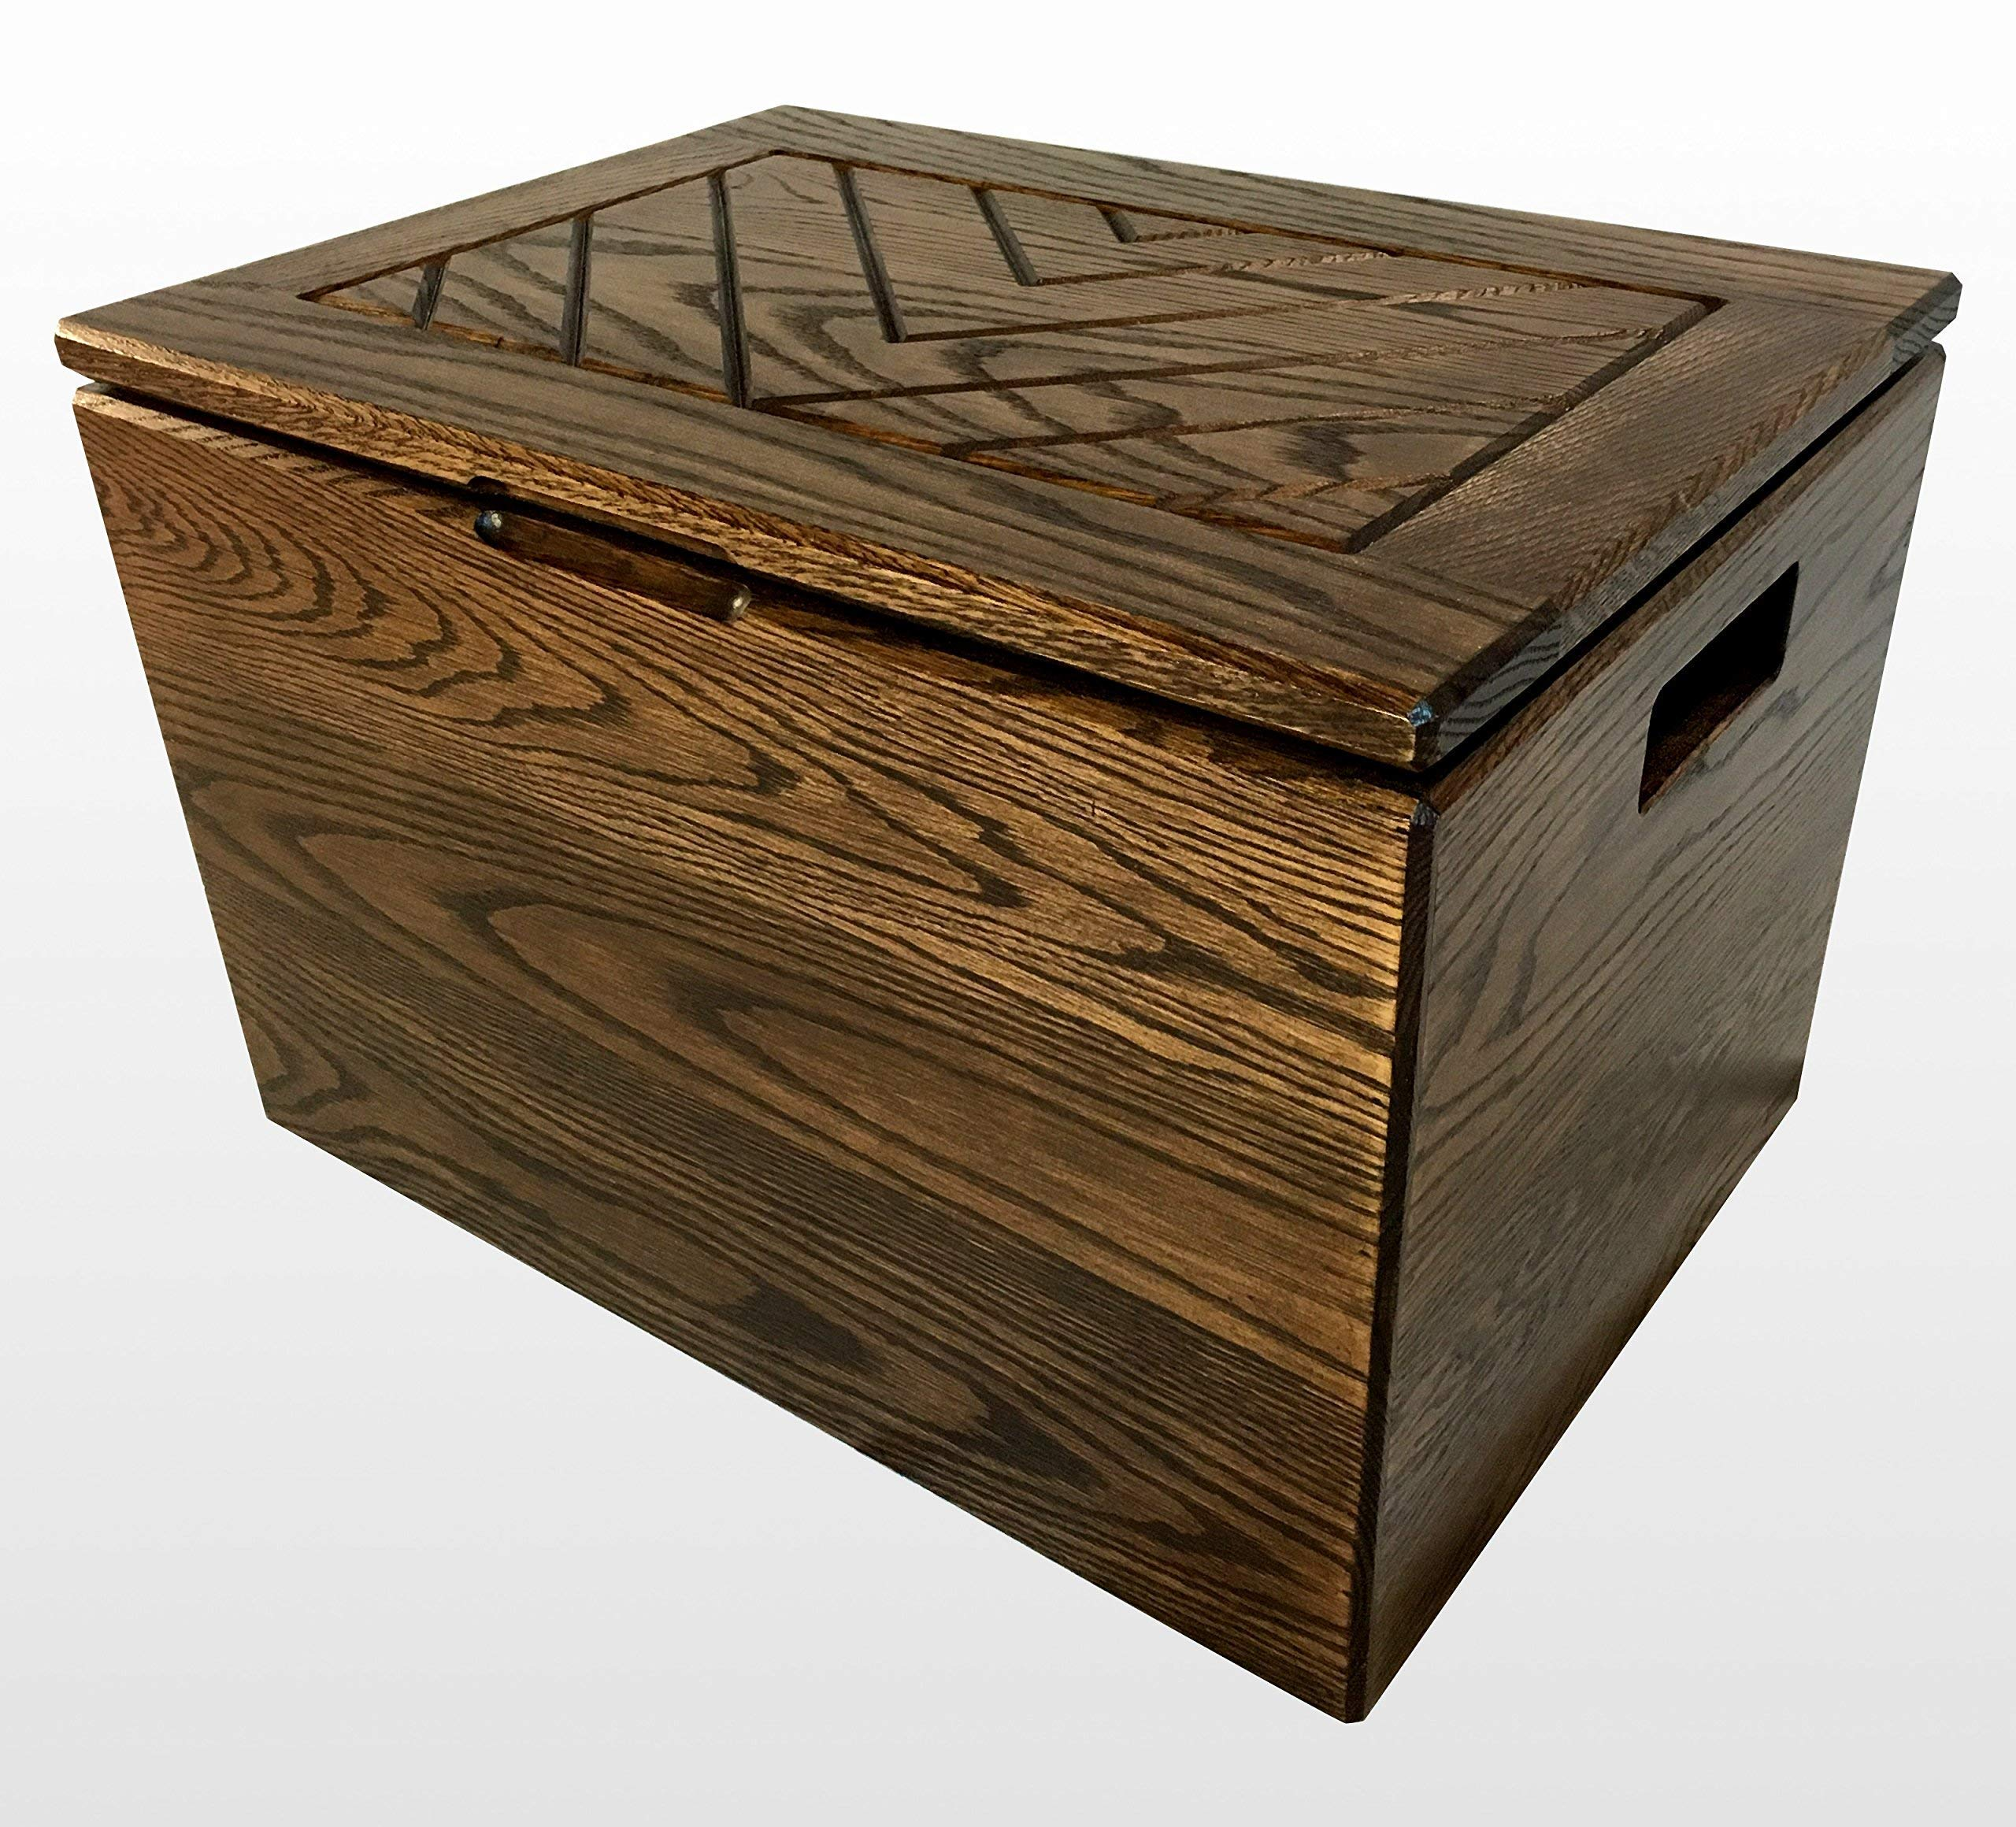 Wood Chest by CW Furniture in Espresso Toy Box Kids Engraved Personalized Hope Memory Treasure Shoe Blanket Solid Hardwood Handles Safety Hinge Oak by Candlewood Furniture